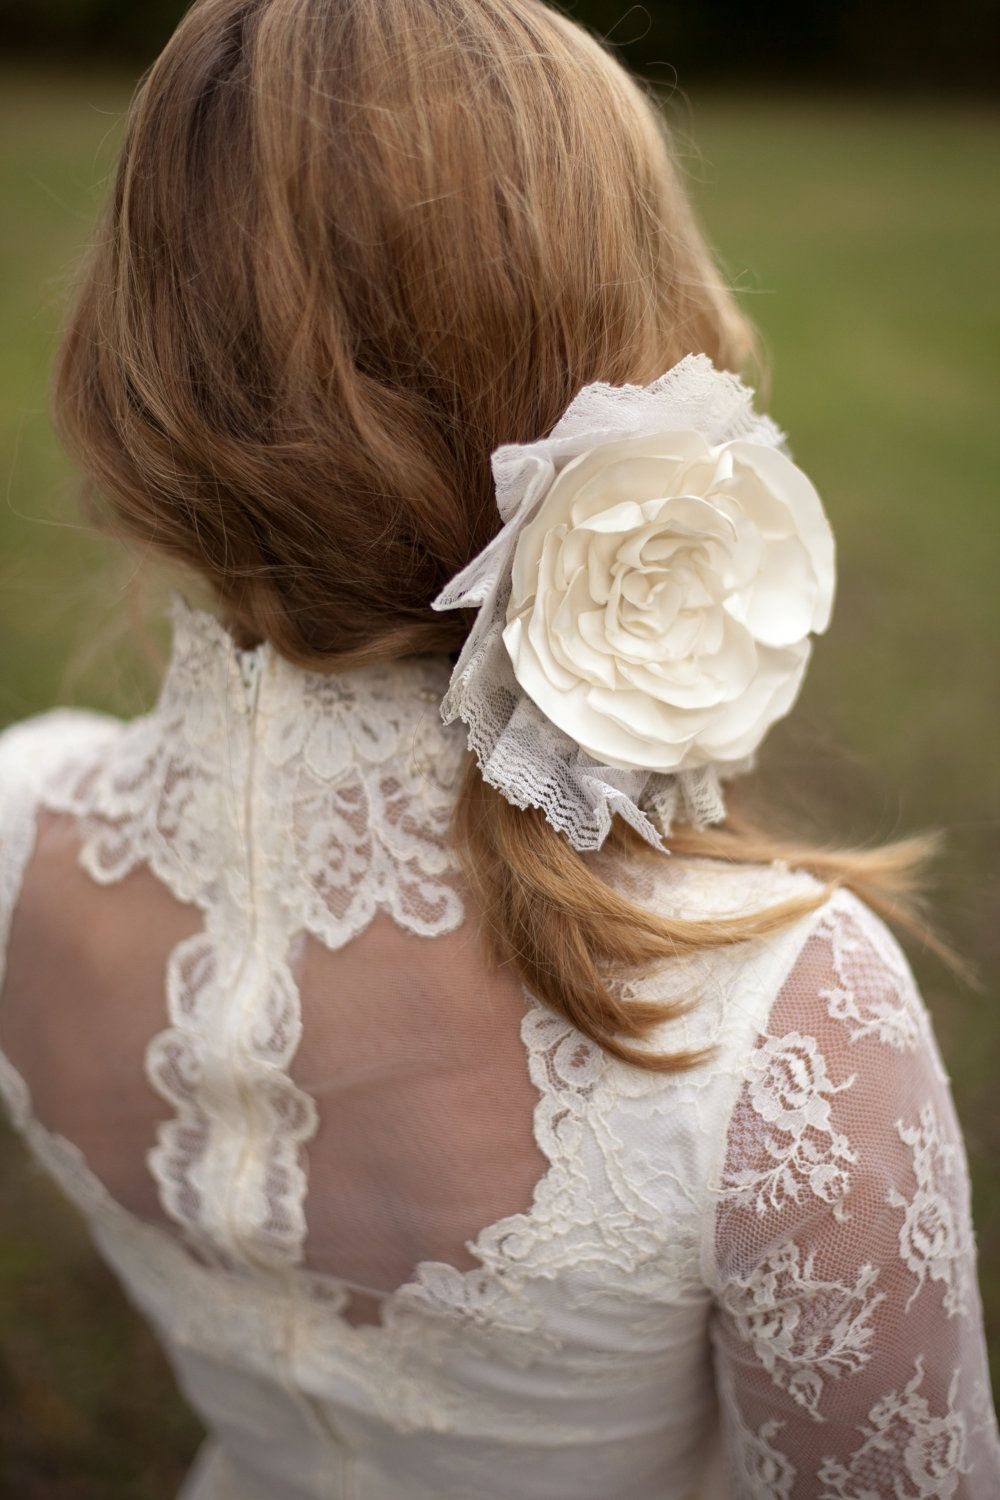 Bridal Hair Accessory: Cream, Ivory Silk Flower Rose with Vintage Pleated Lace